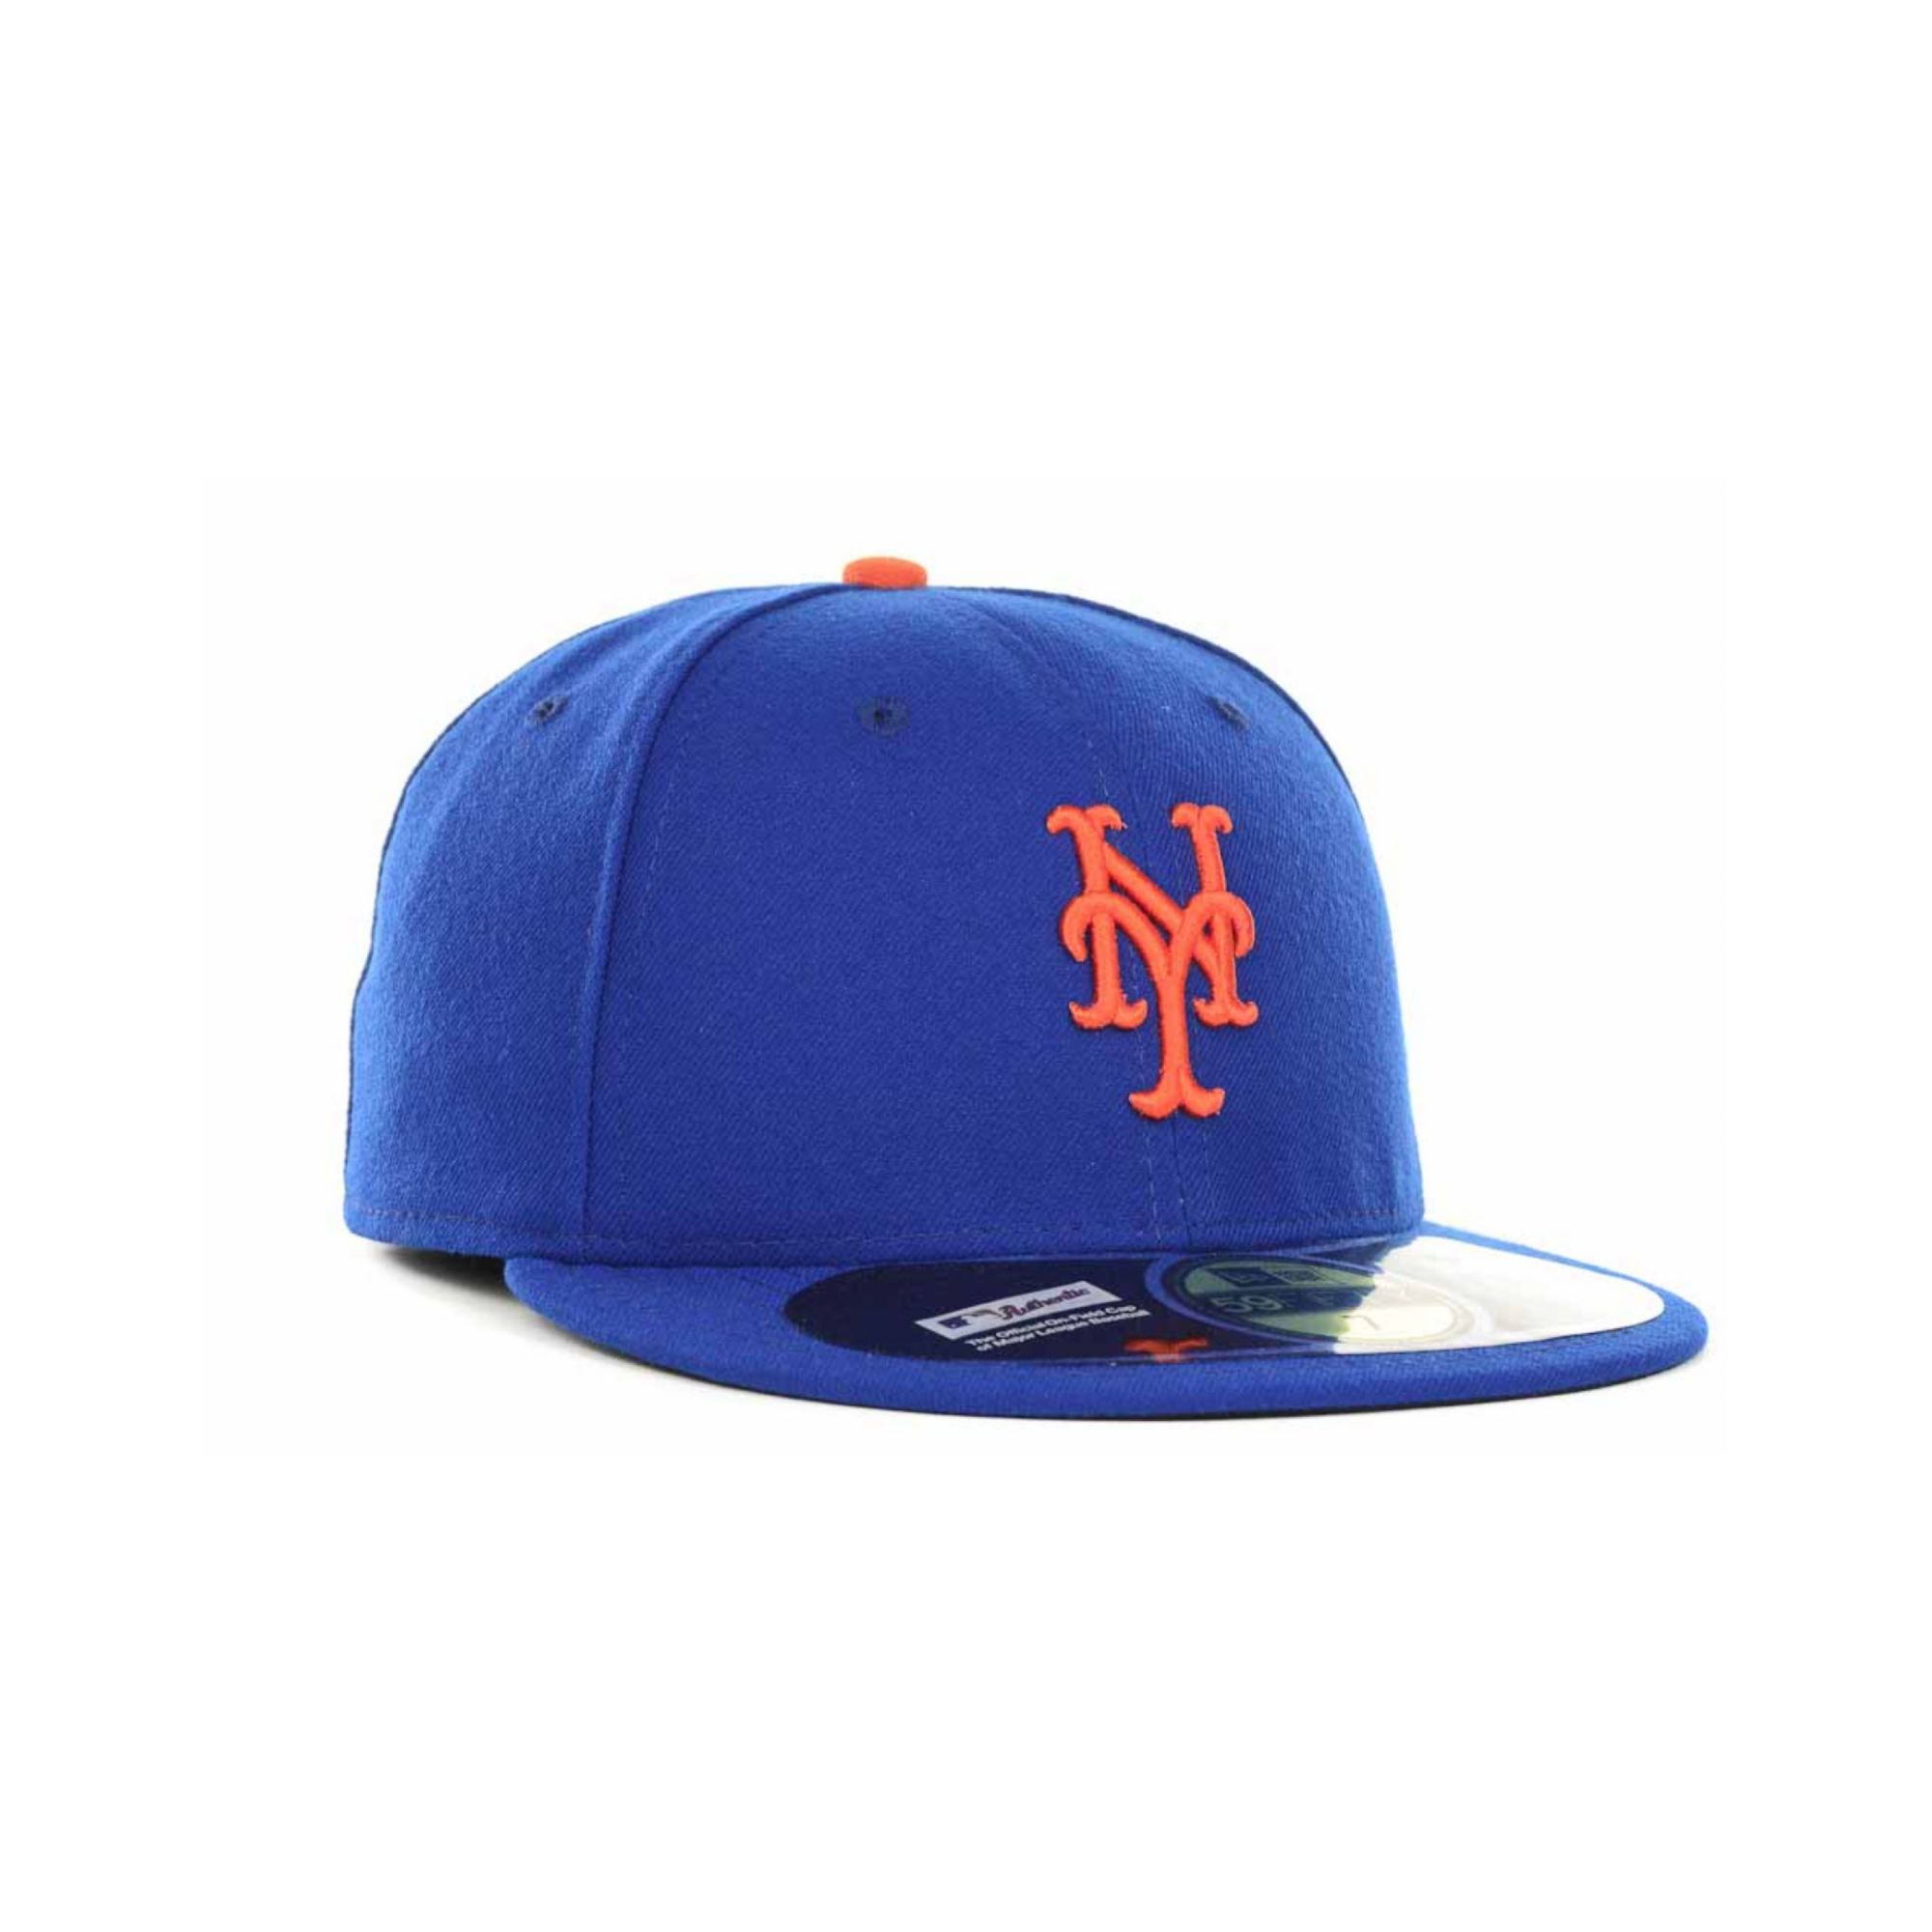 Lyst - KTZ New York Mets Mlb All Star Patch 59fifty Cap in Blue for Men e848e35cefb